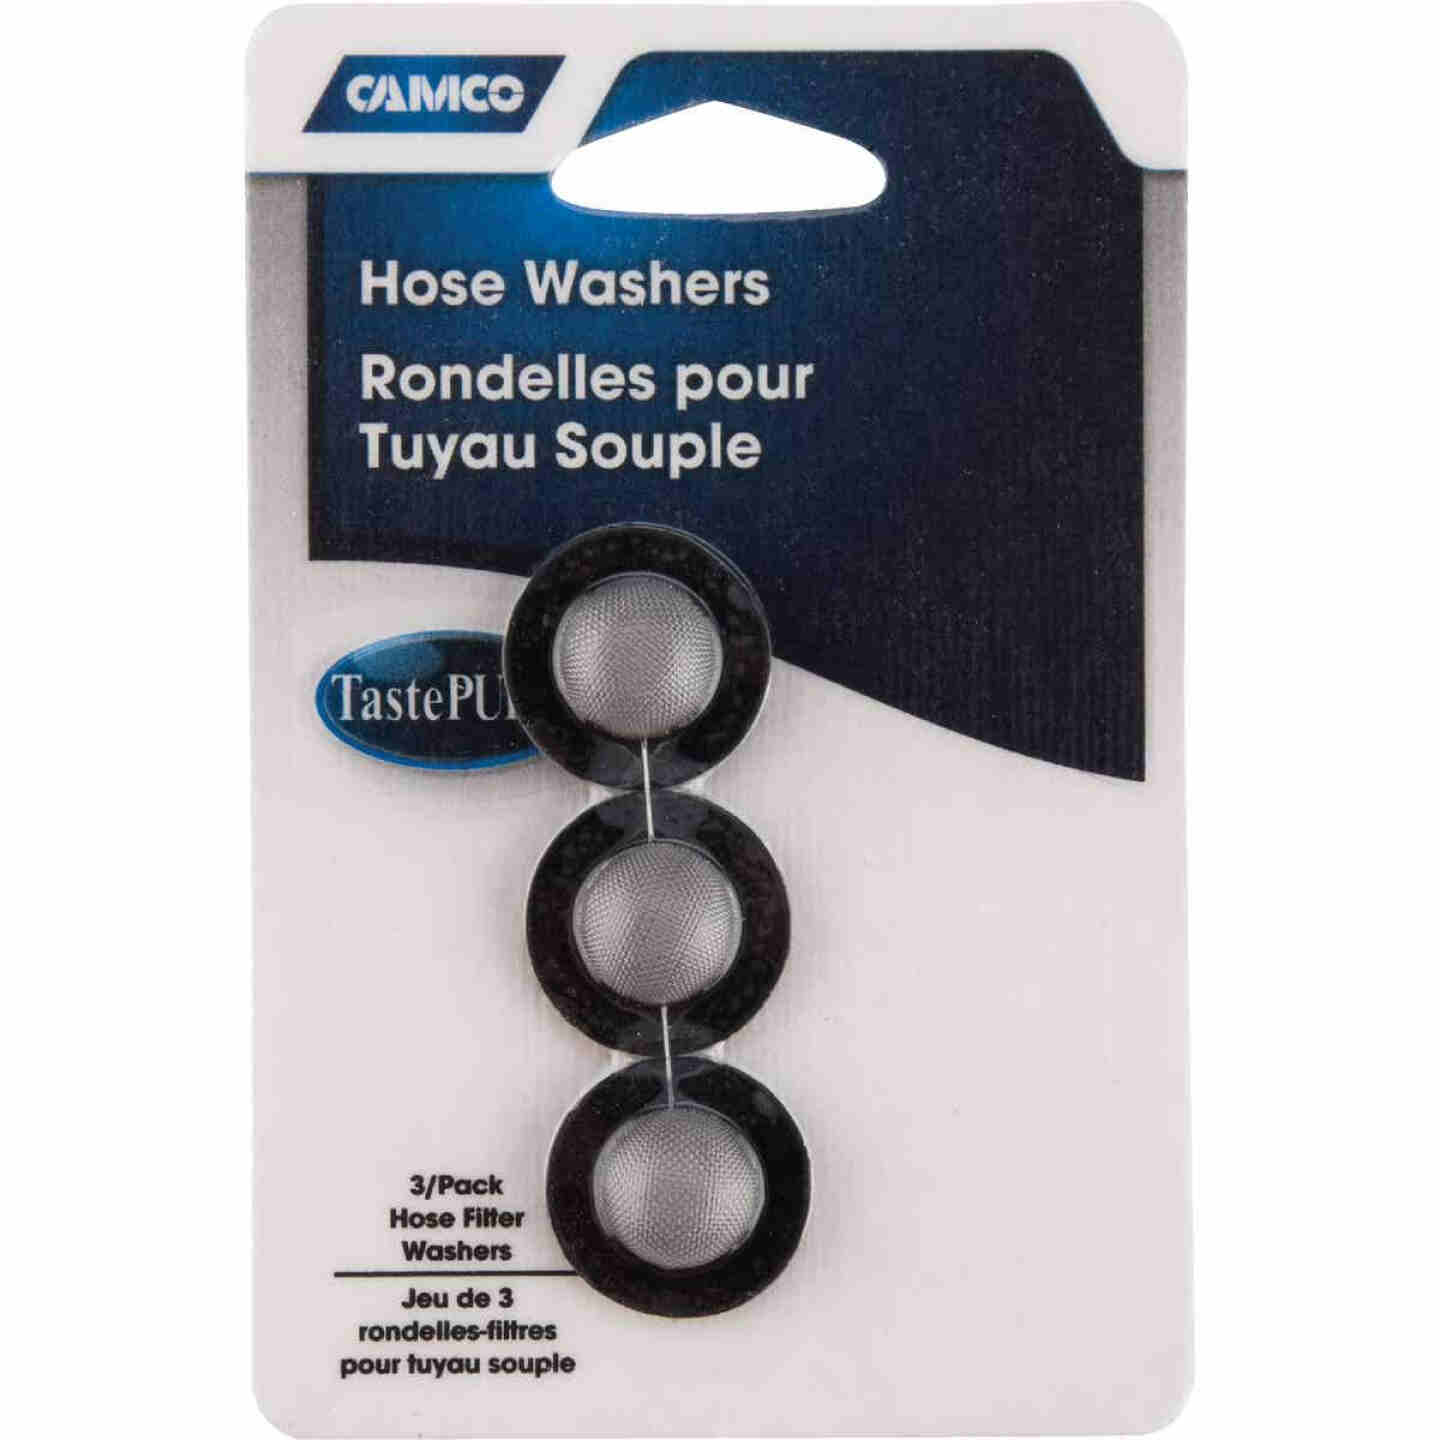 Camco Stainless Steel Mesh 1 In. RV Washer with Filter, (3-Pack) Image 2